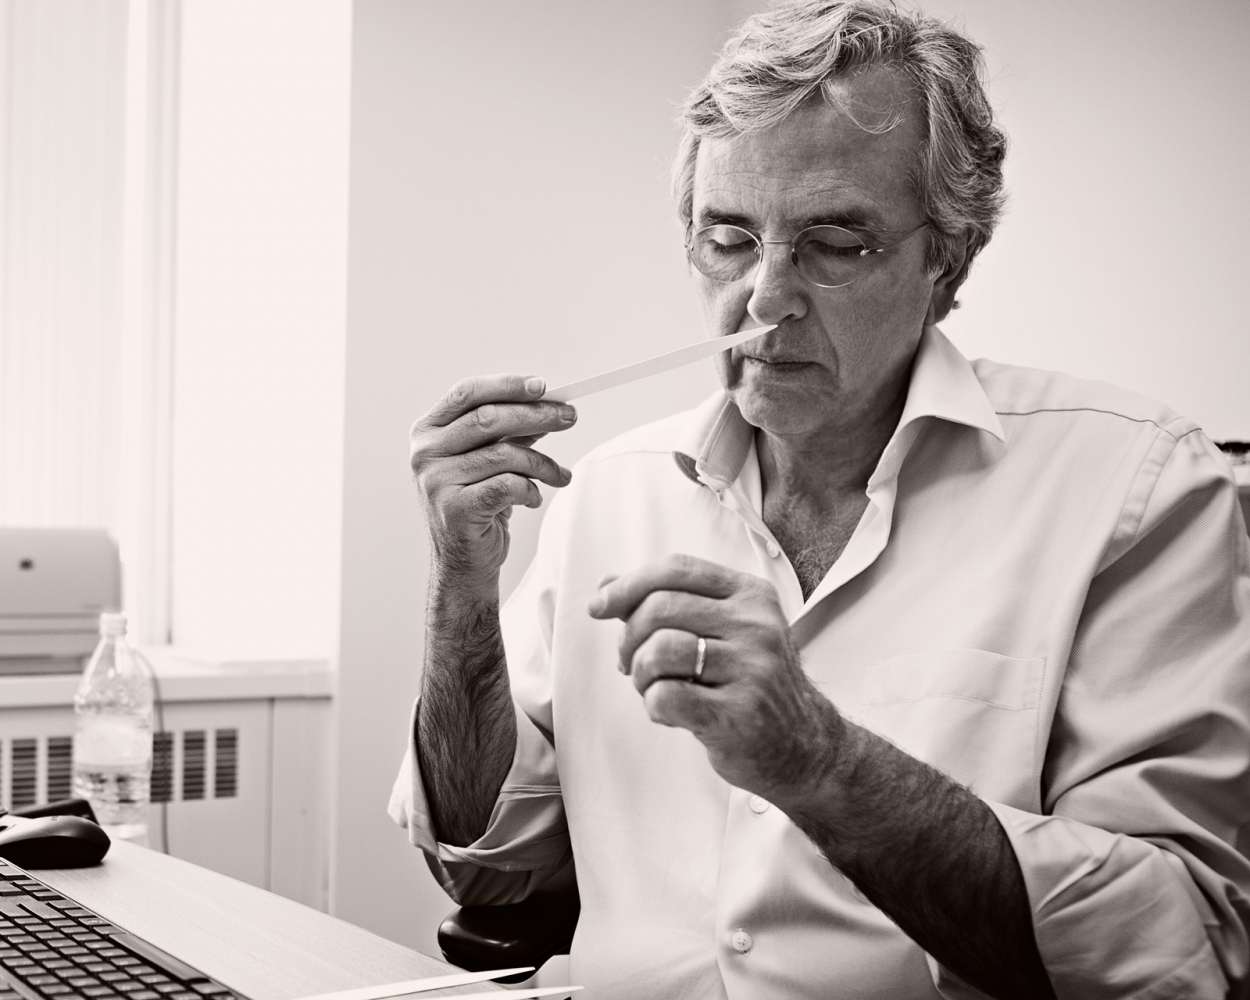 NYC Makers: The 2014 MAD Biennial and Book IFF's Master Perfumer Carlos Benaim in his office in NYC